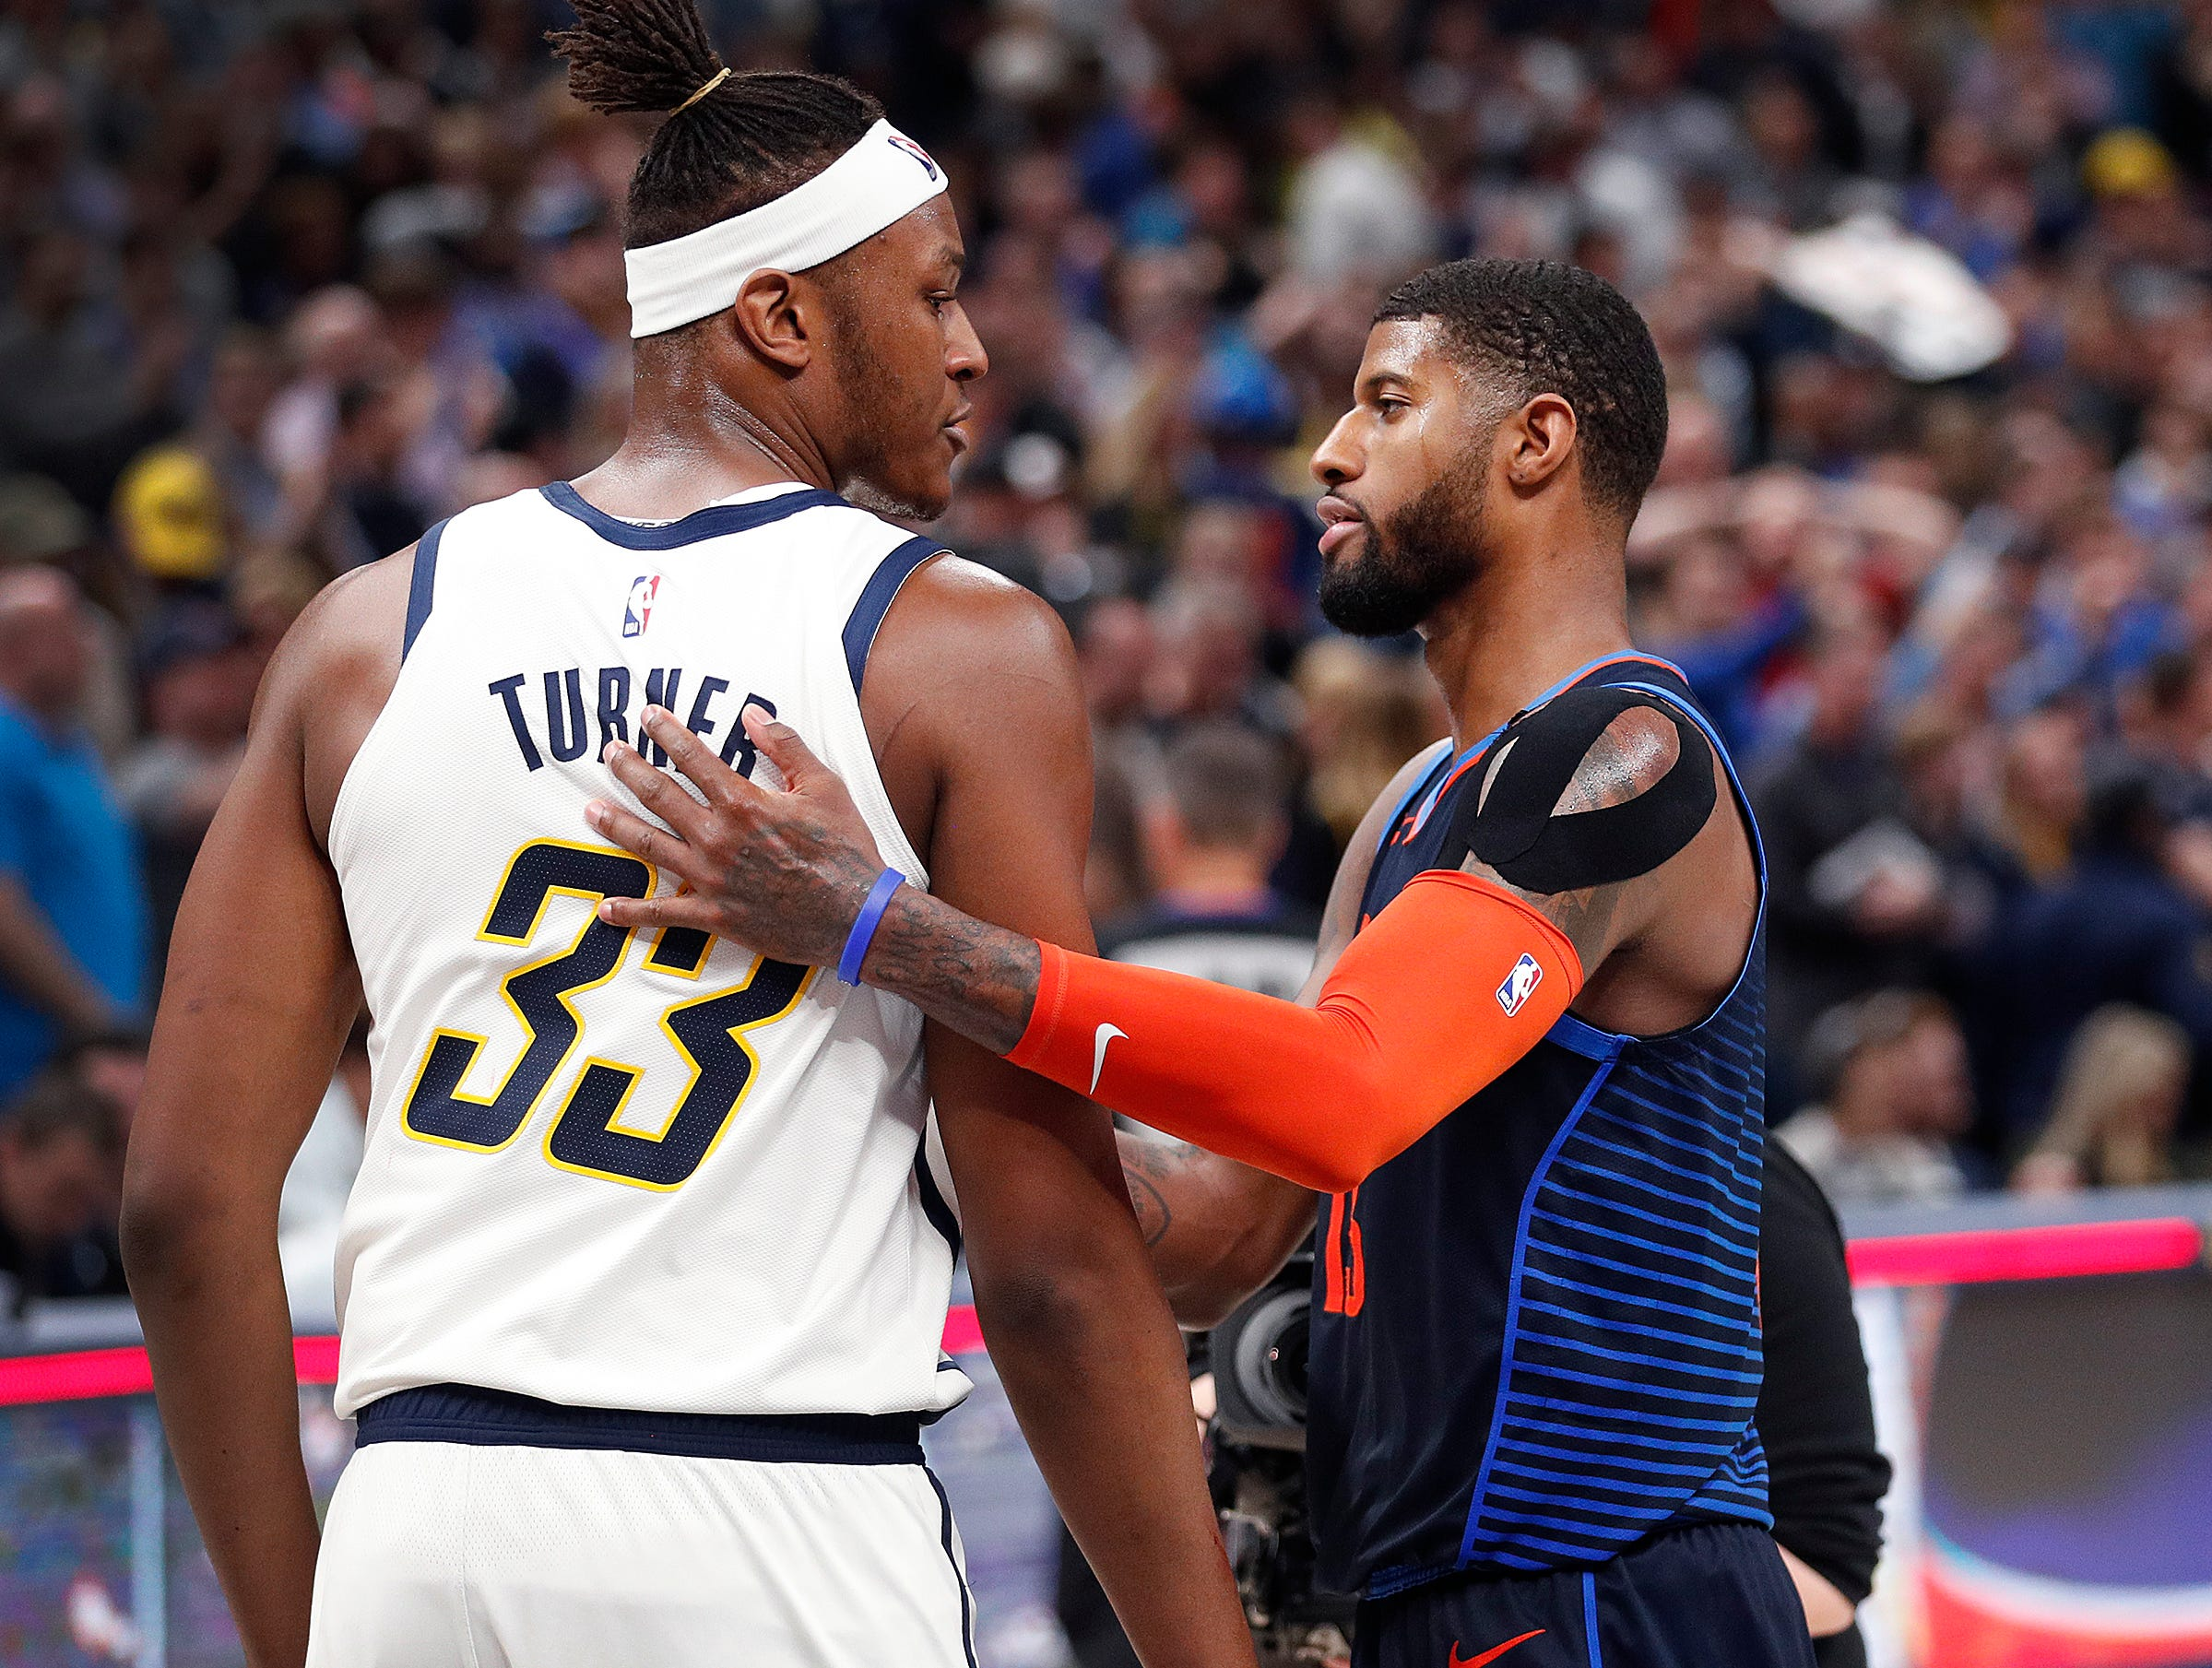 Indiana Pacers center Myles Turner (33) and Oklahoma City Thunder forward Paul George (13) greets eachother following  their game at Bankers Life Fieldhouse on Thursday, Mar. 14, 2019. The Pacers defeated the Thunder 108-106.